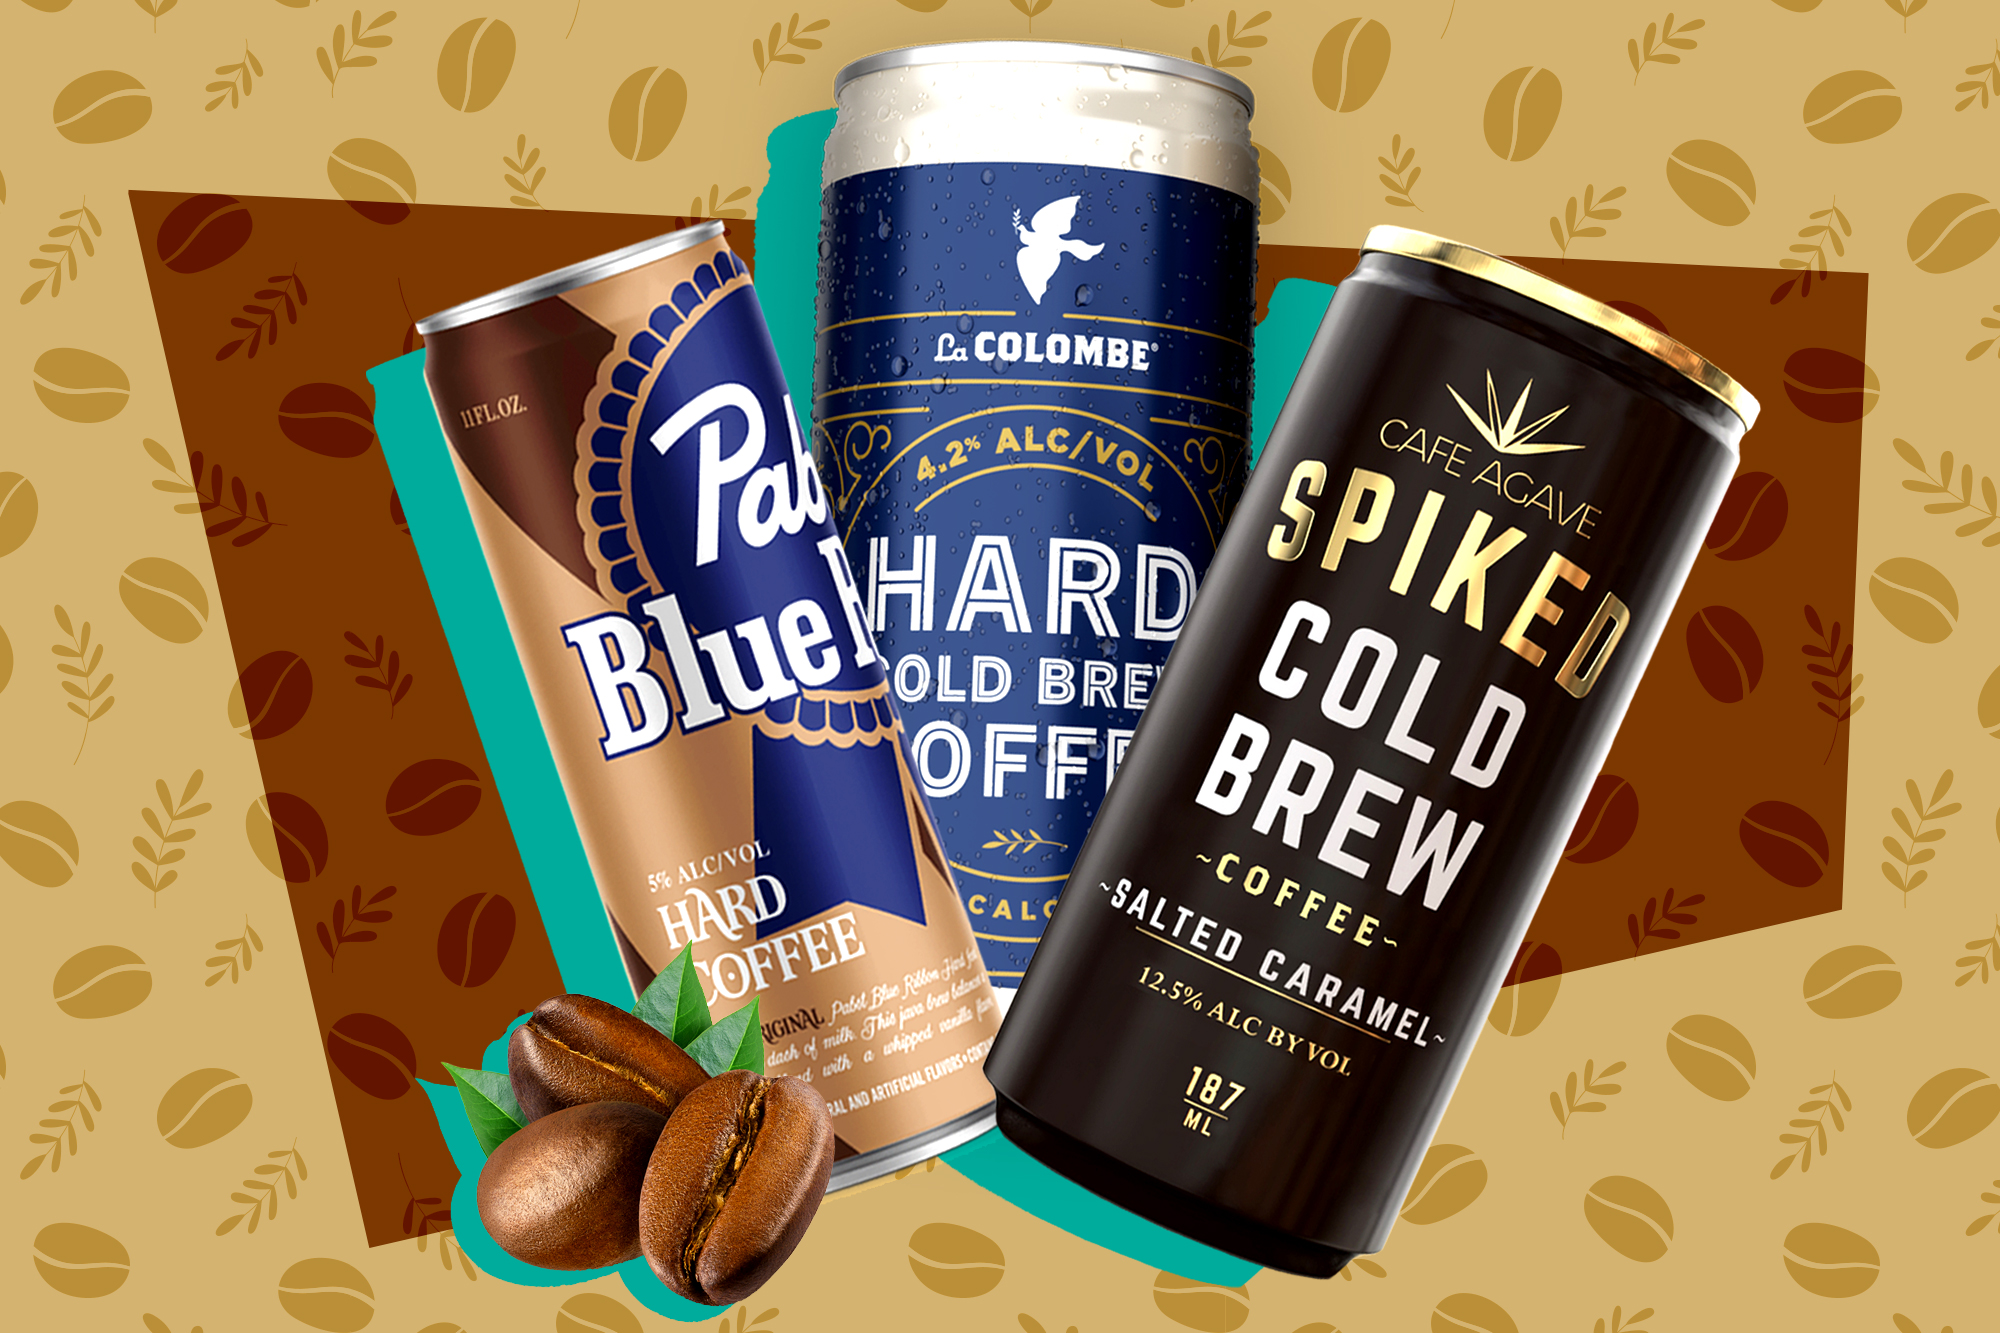 Cans of PBR, La Colombe, and Cafe Agave versions of hard coffee.